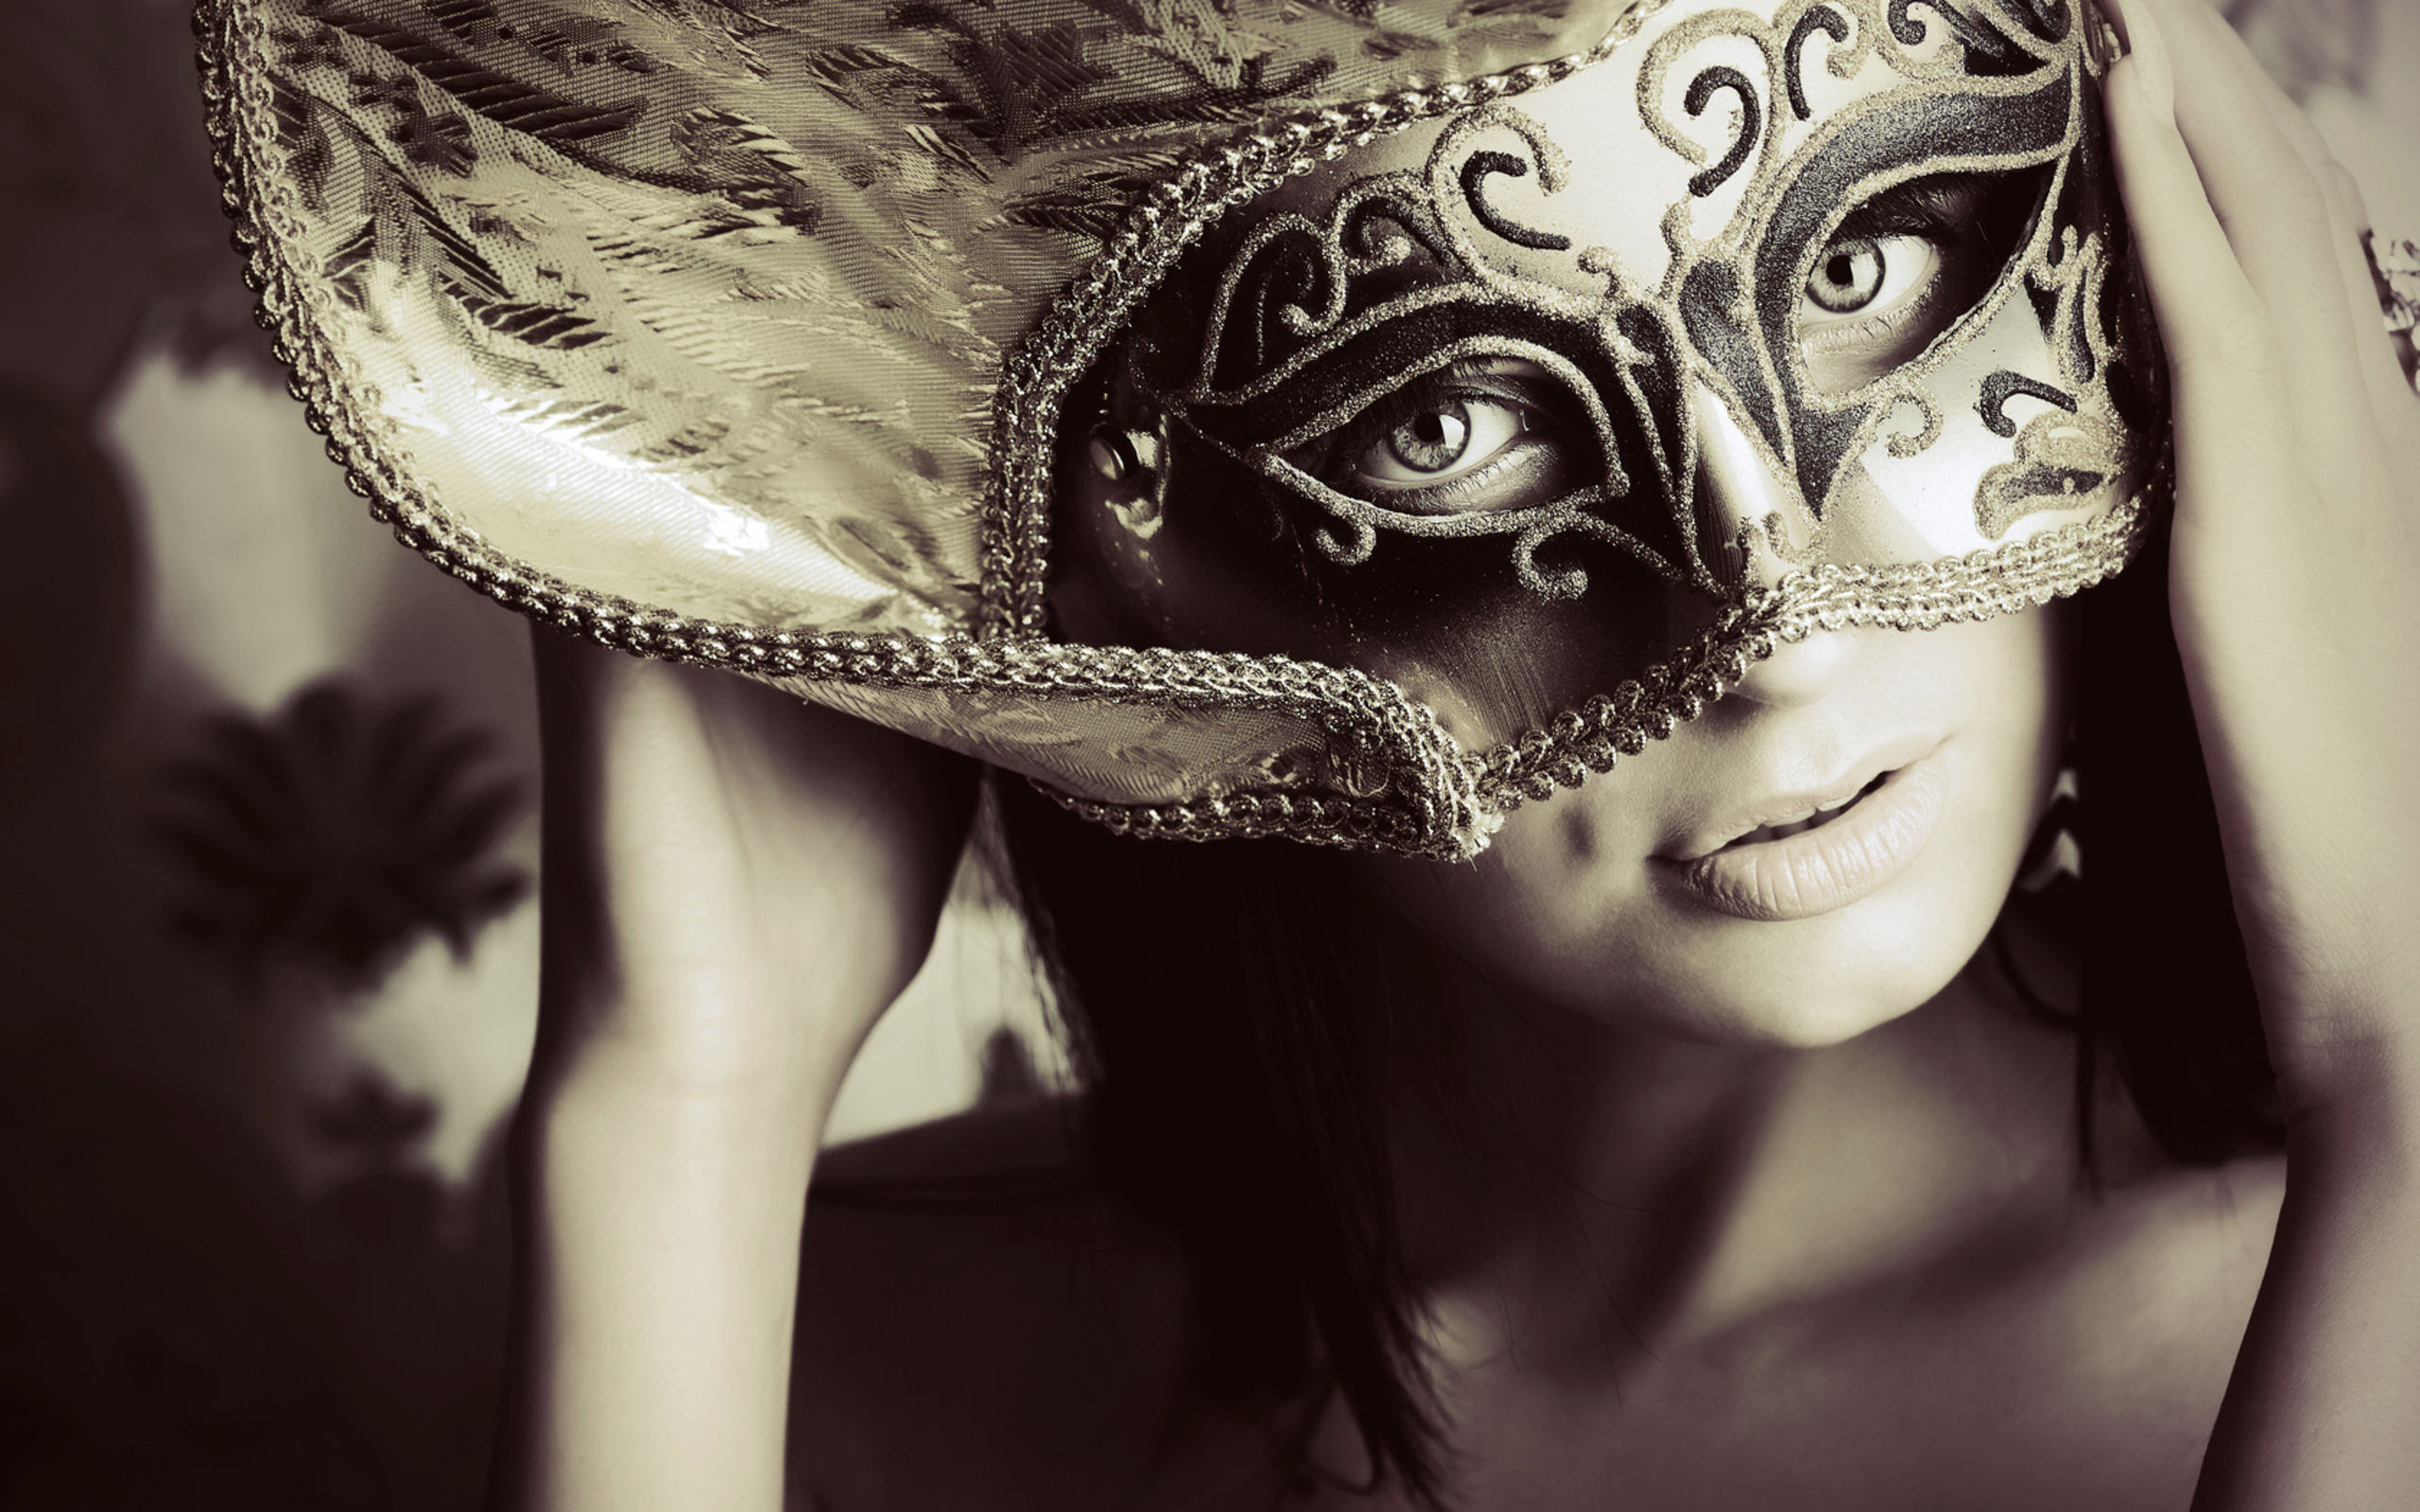 You searched for: girls masquerade mask! Etsy is the home to thousands of handmade, vintage, and one-of-a-kind products and gifts related to your search. No matter what you're looking for or where you are in the world, our global marketplace of sellers can help you .